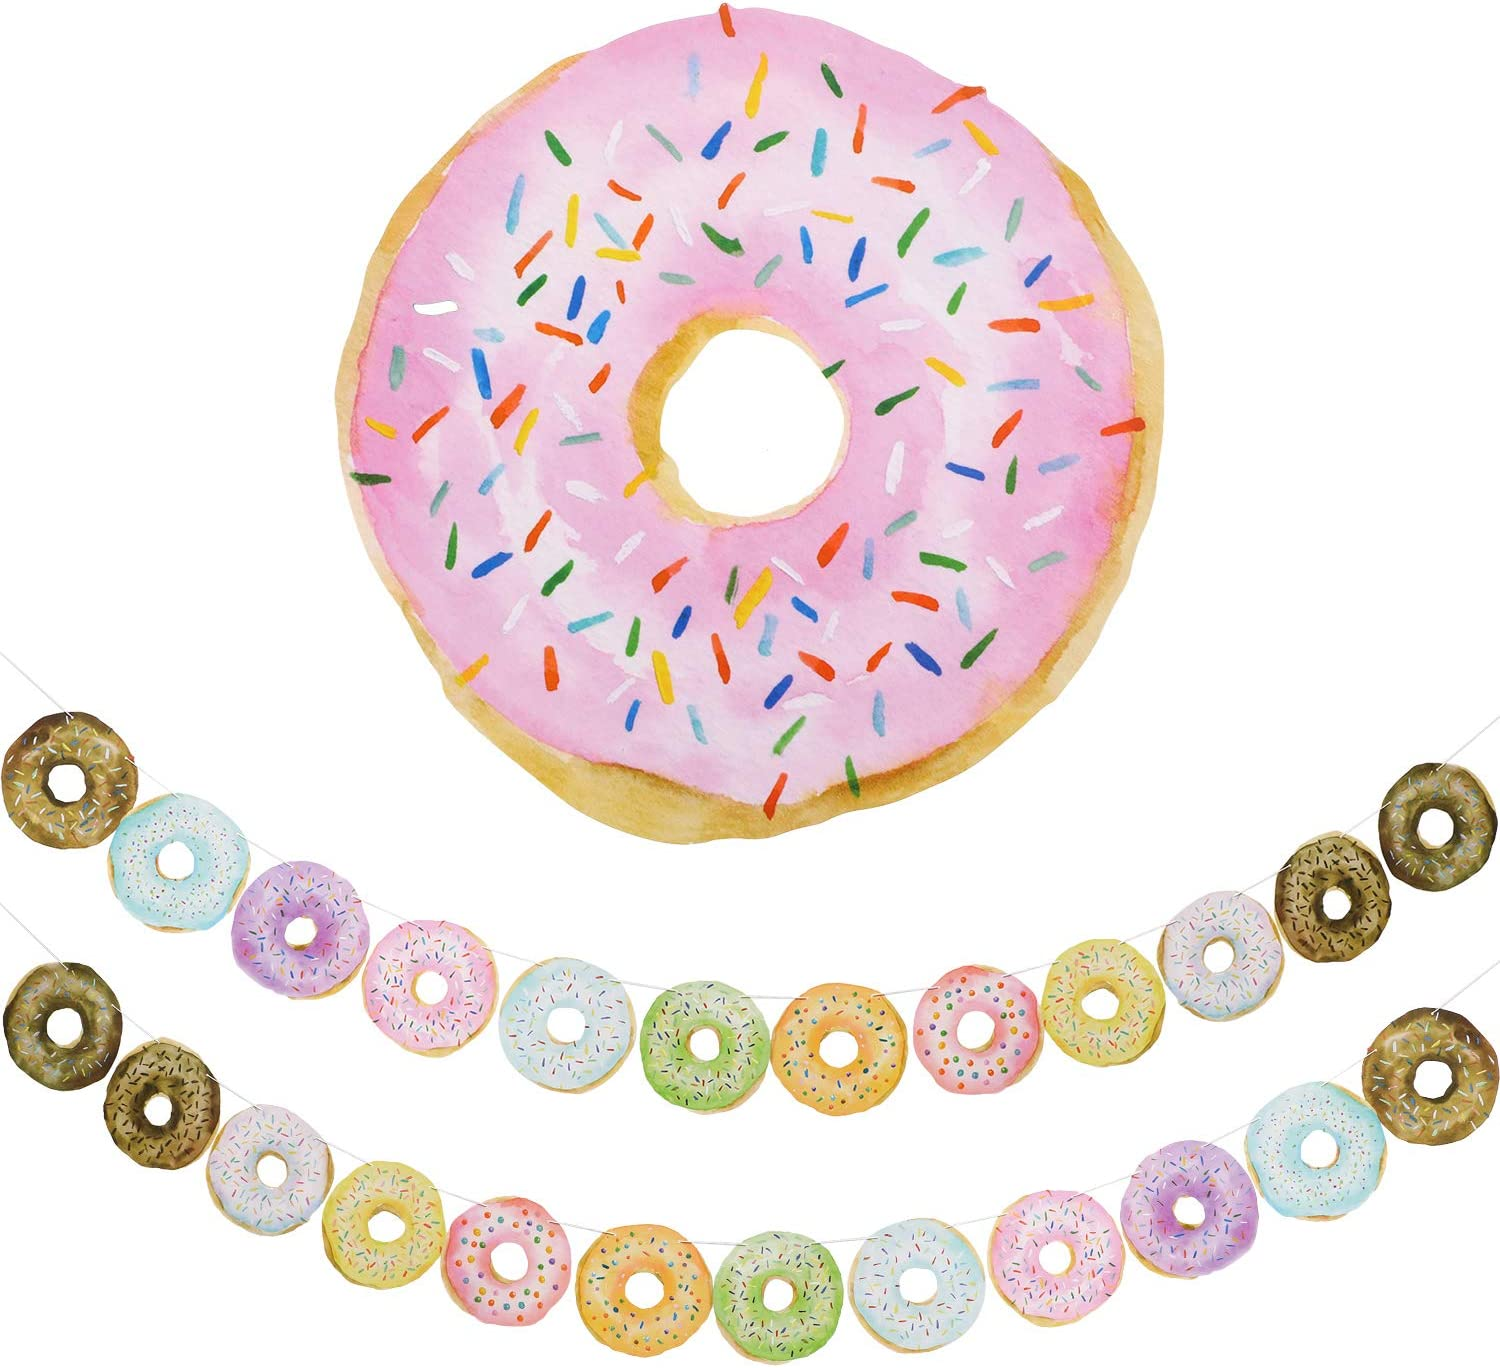 Donut Decorations Party Banner Garland Doughnut Birthday Party Supplies Donut Time Party Decorations for Thanksgiving Christmas or Birthday Party Photo Props, 2 Sets